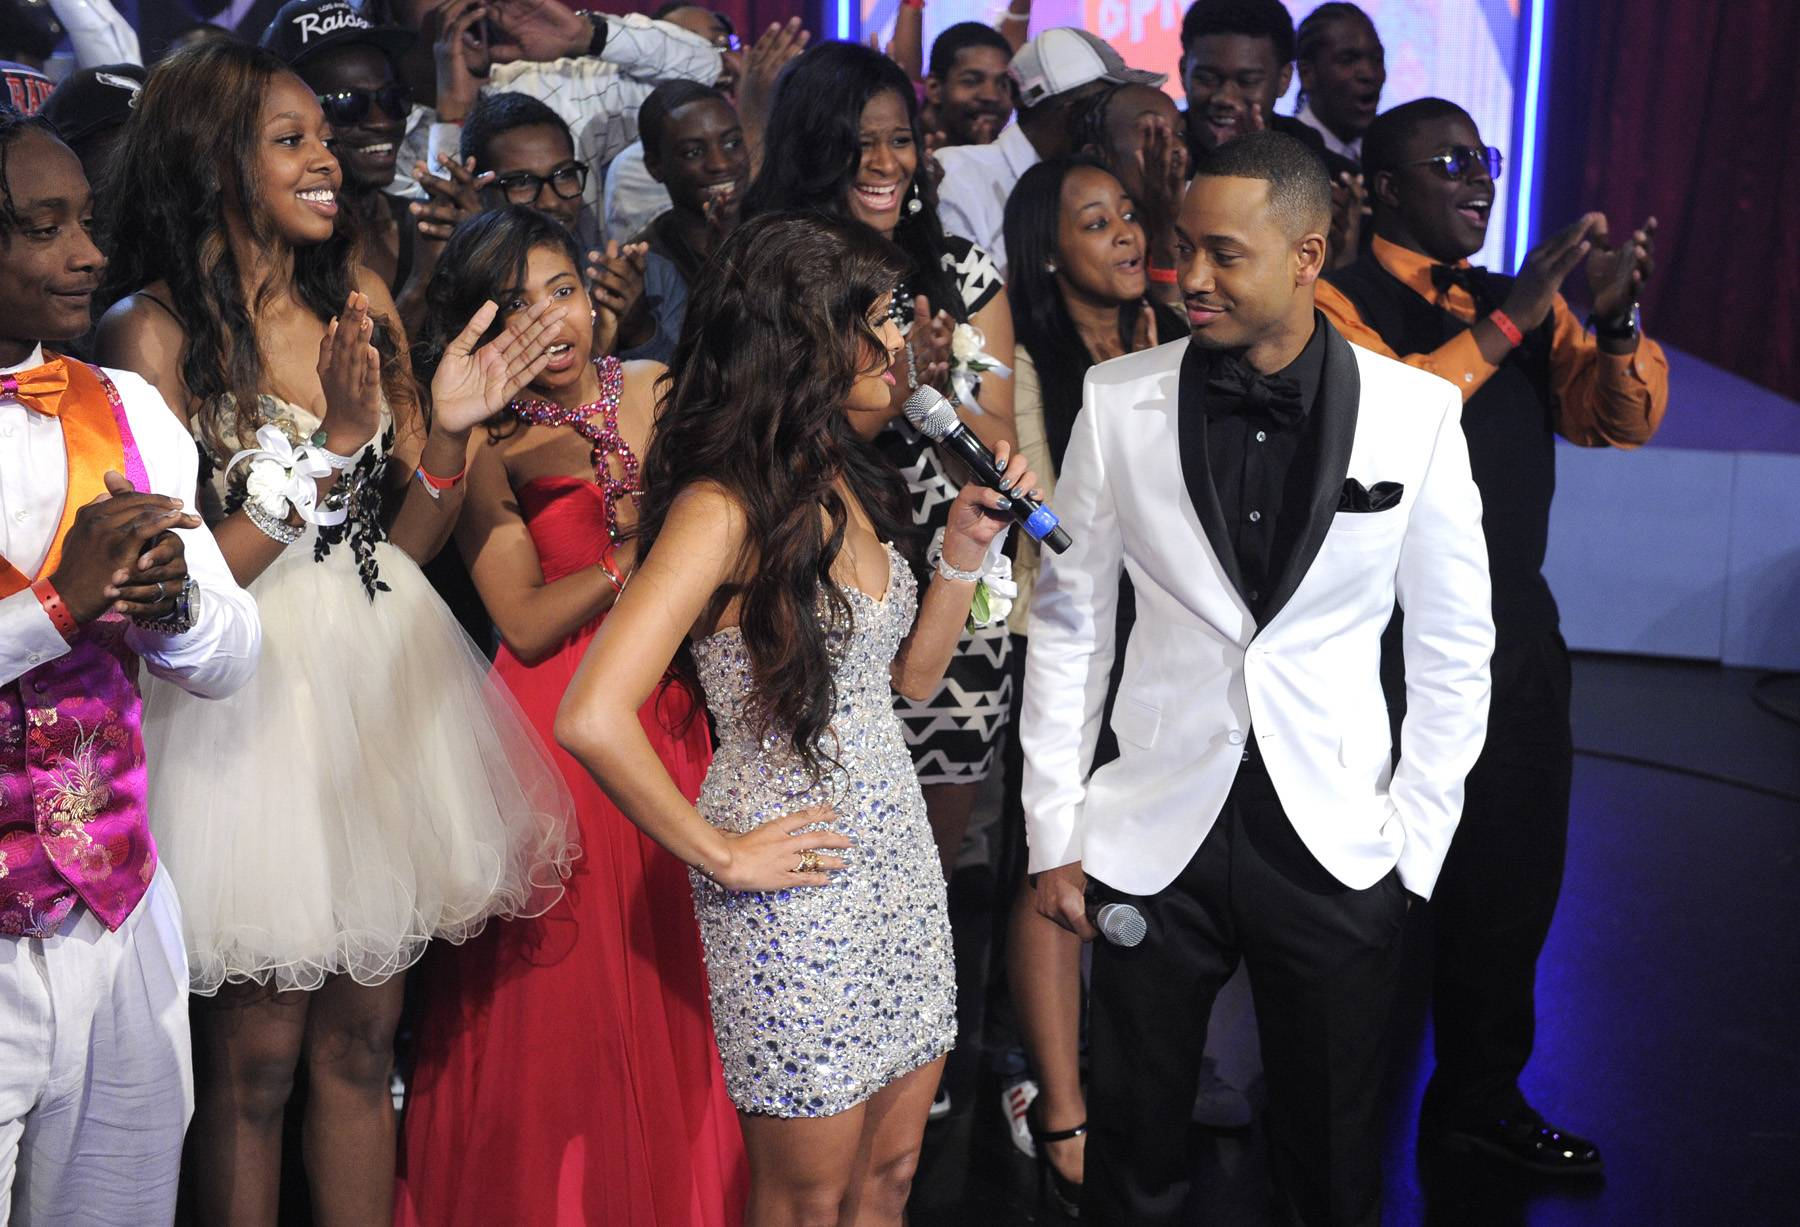 Hey You! - Rocsi Diaz and Terrence J hosts a Prom Special for the Class of 2012 at 106 & Park, May 25, 2012. (Photo: John Ricard / BET)